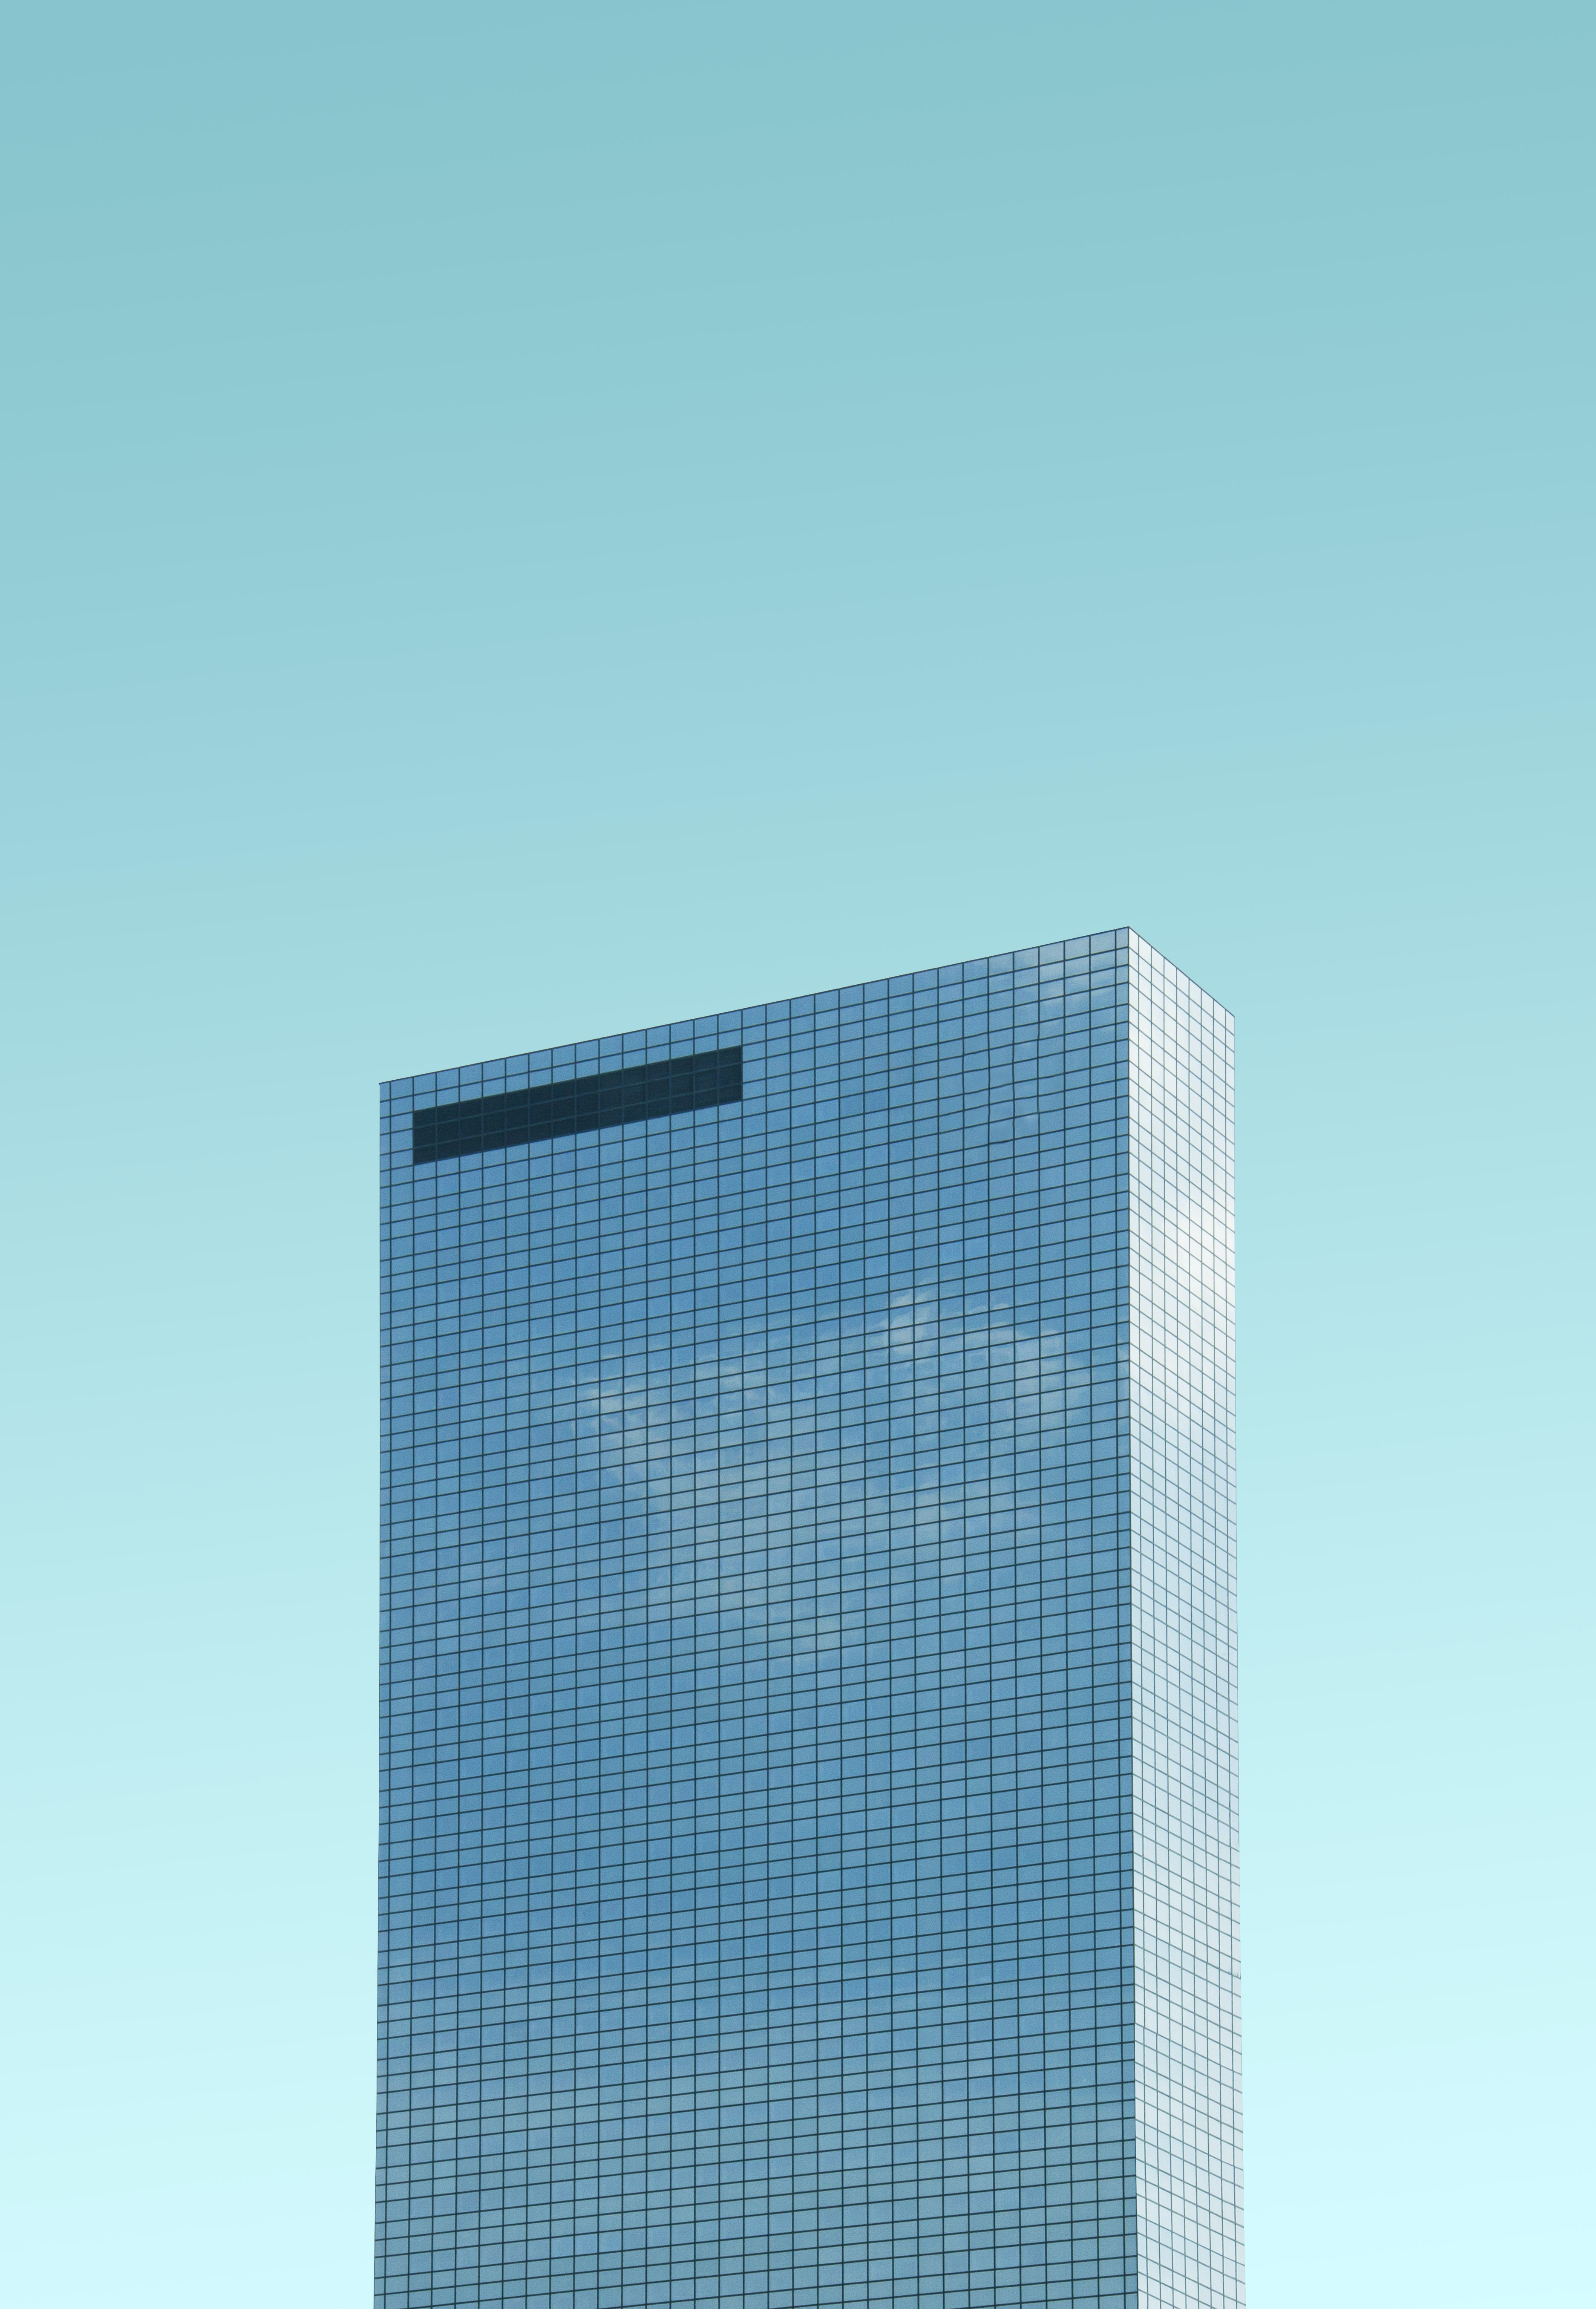 high-rise building photo